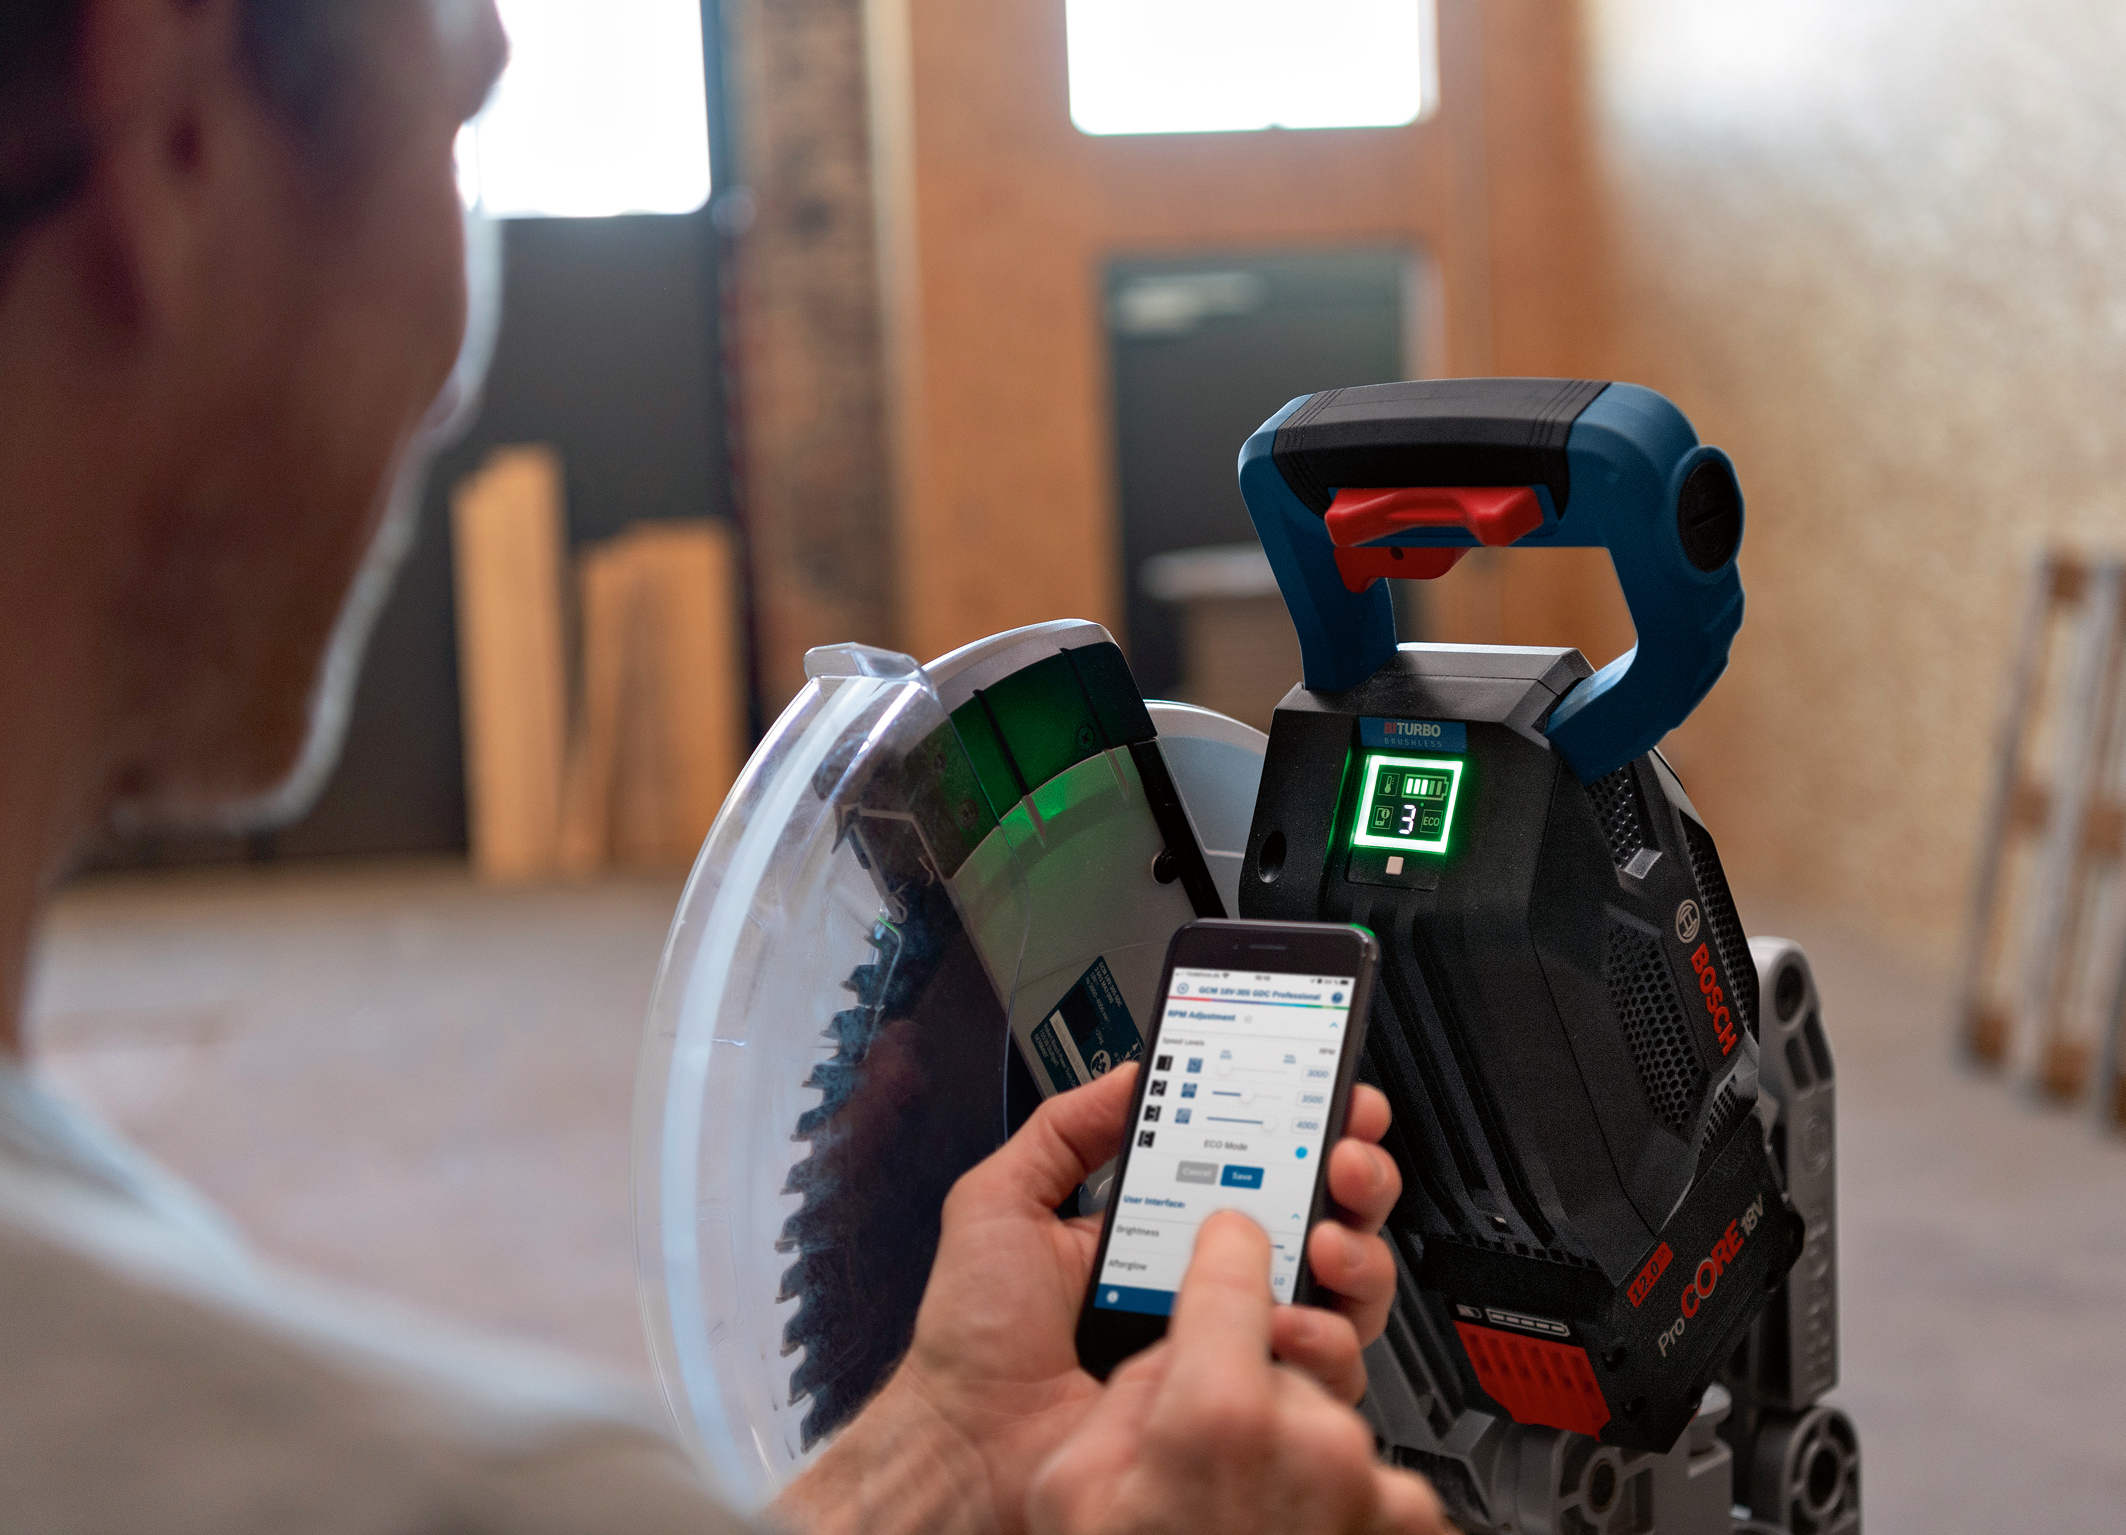 First cordless miter saw with an interactive display and connectivity: Biturbo miter saw from Bosch for professionals